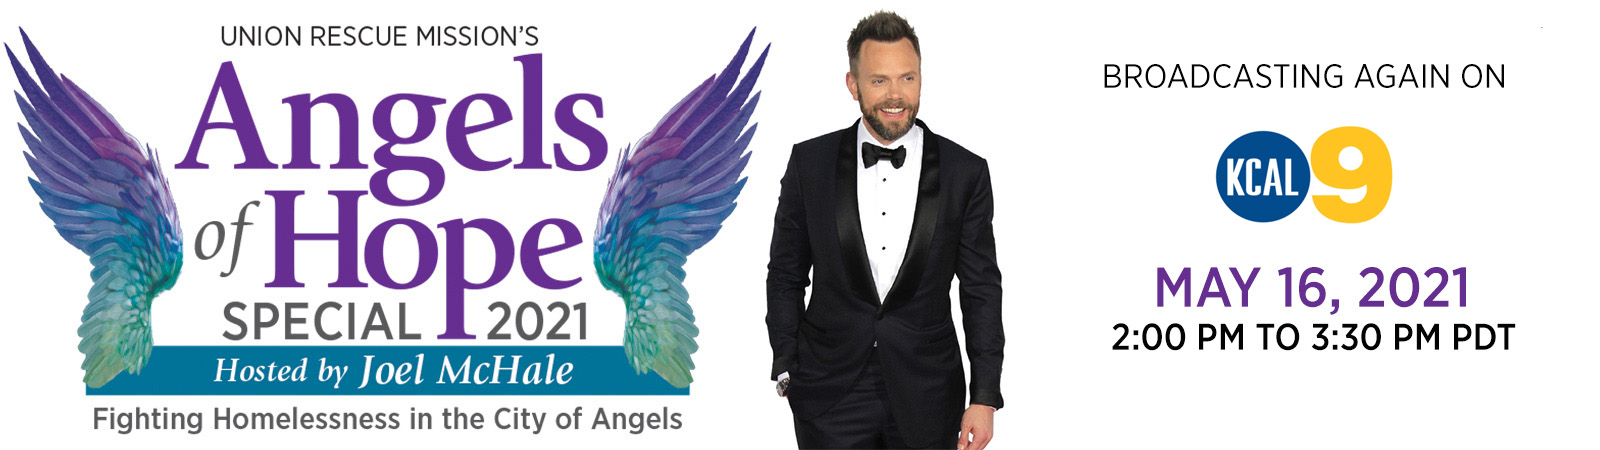 Angels of Hope Special - 2021 42